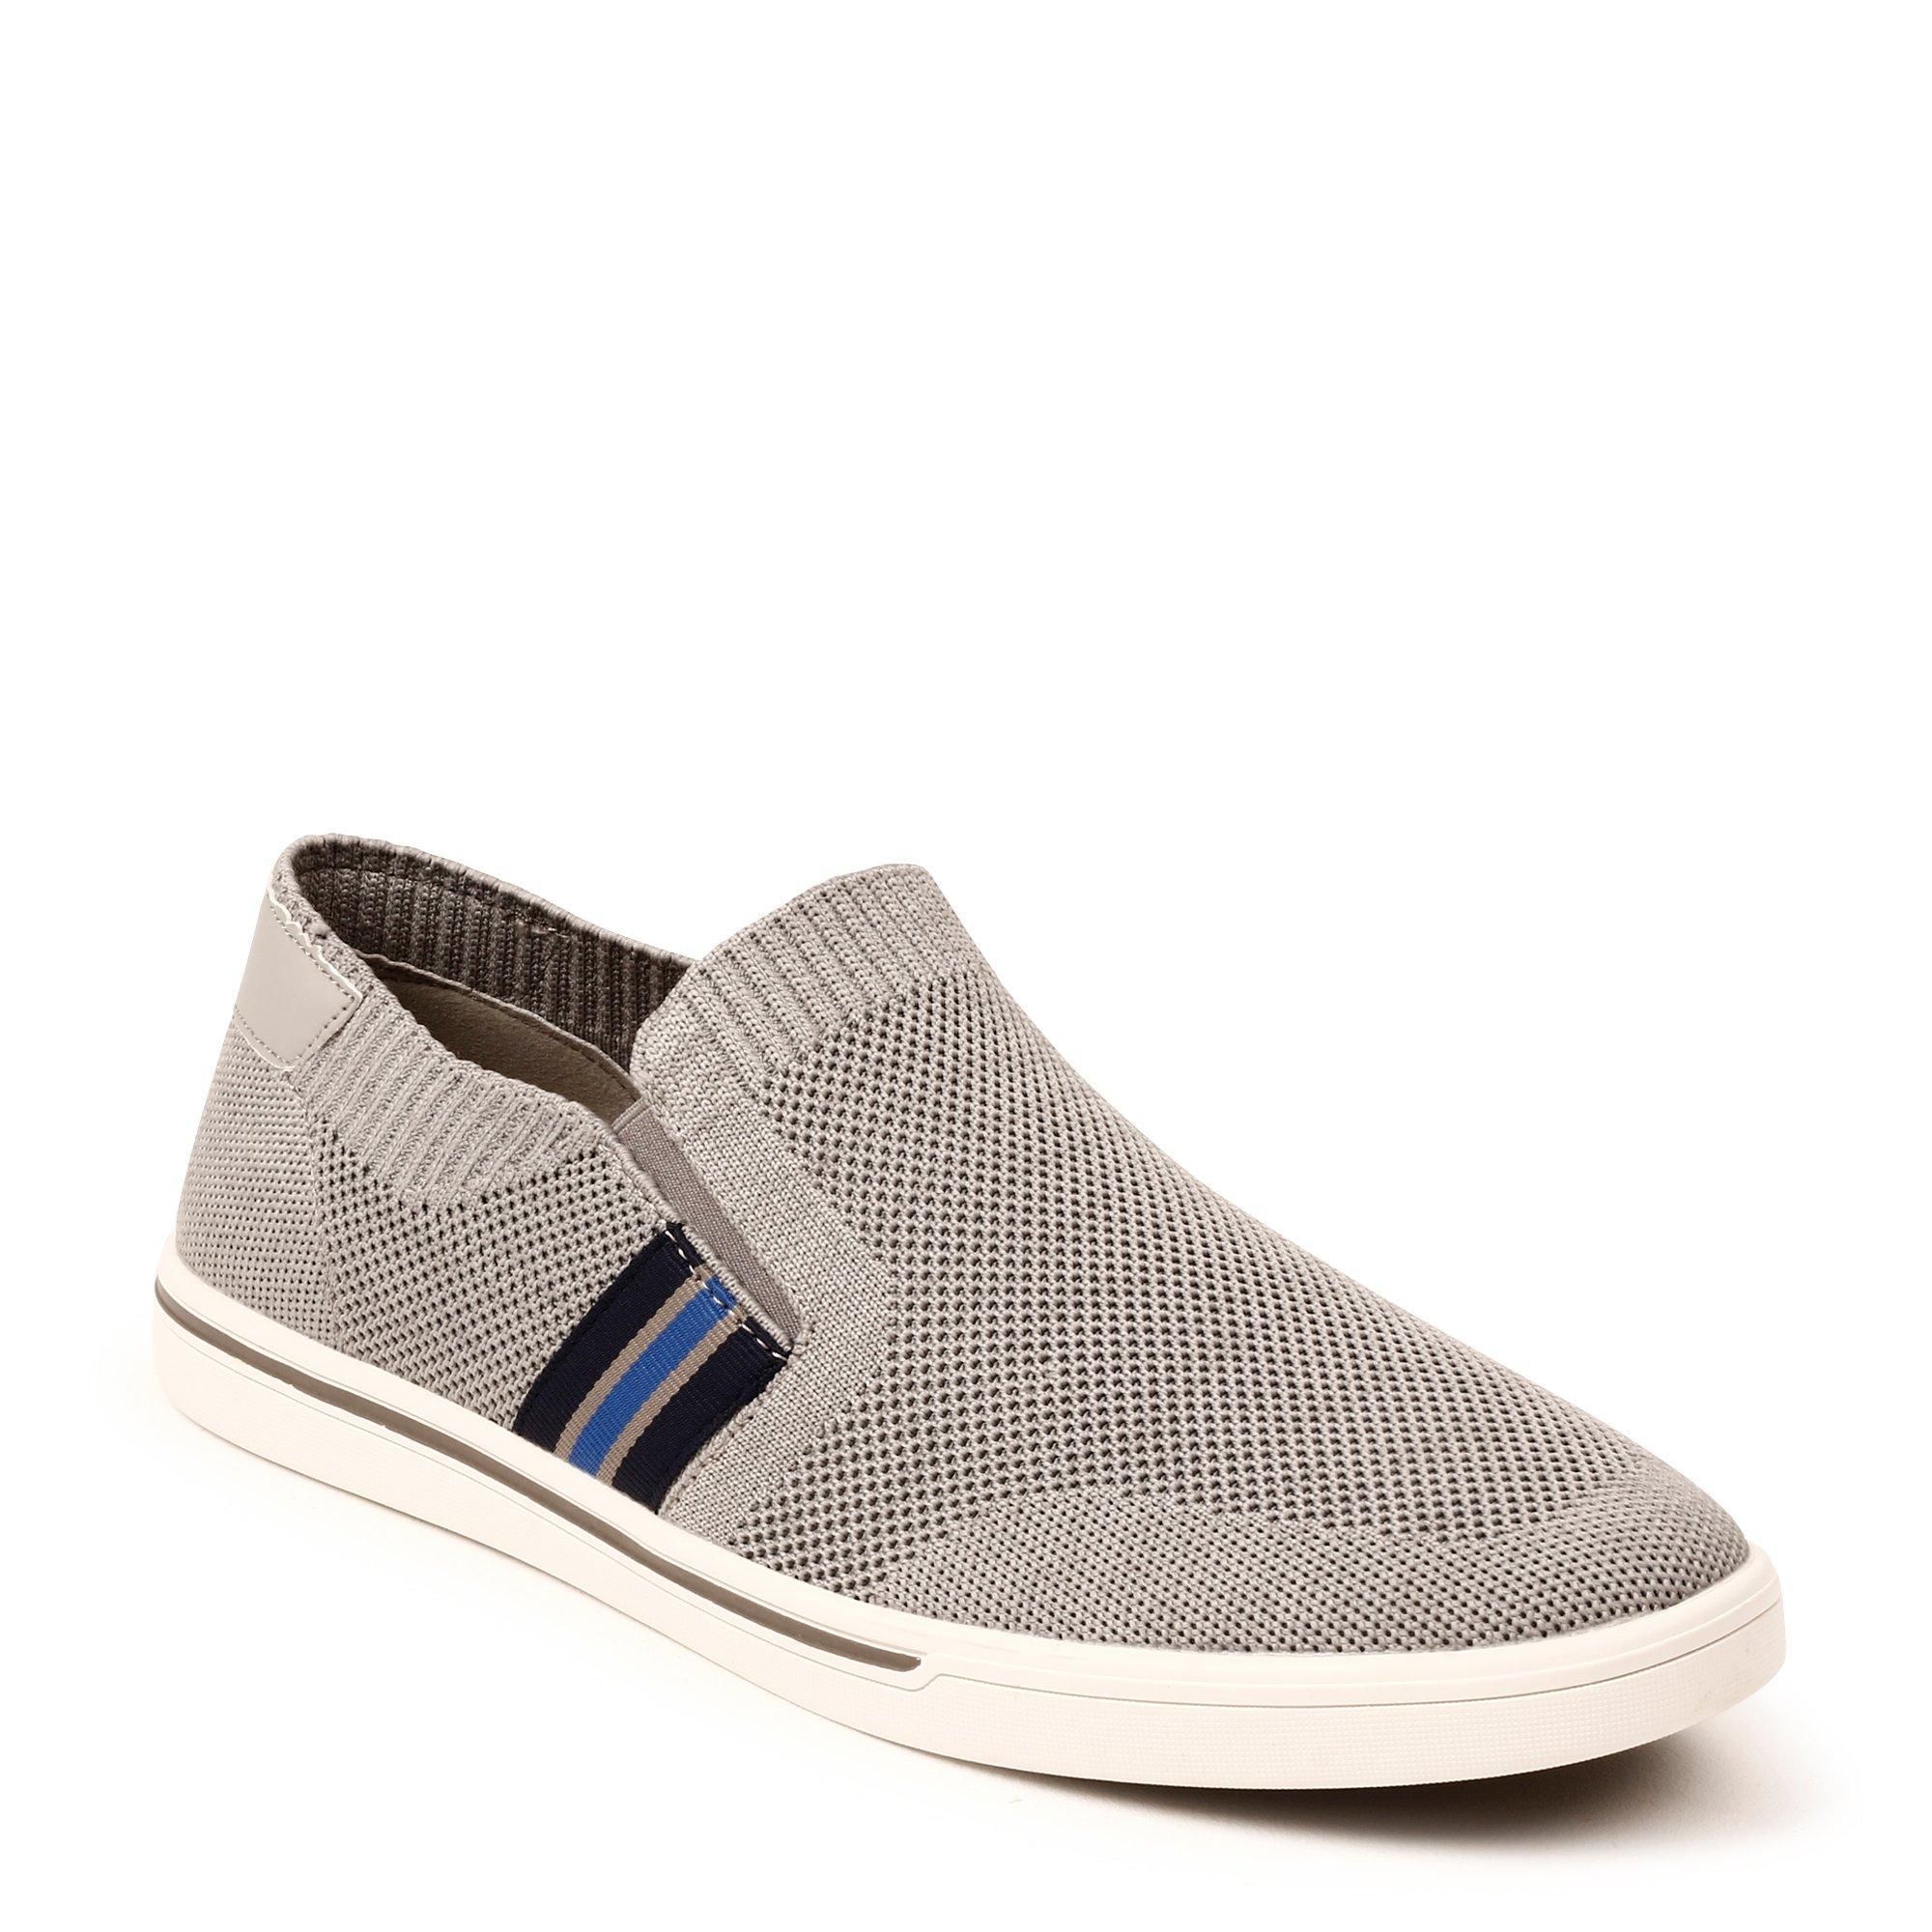 TYCOON - Knit Stripe Slip On